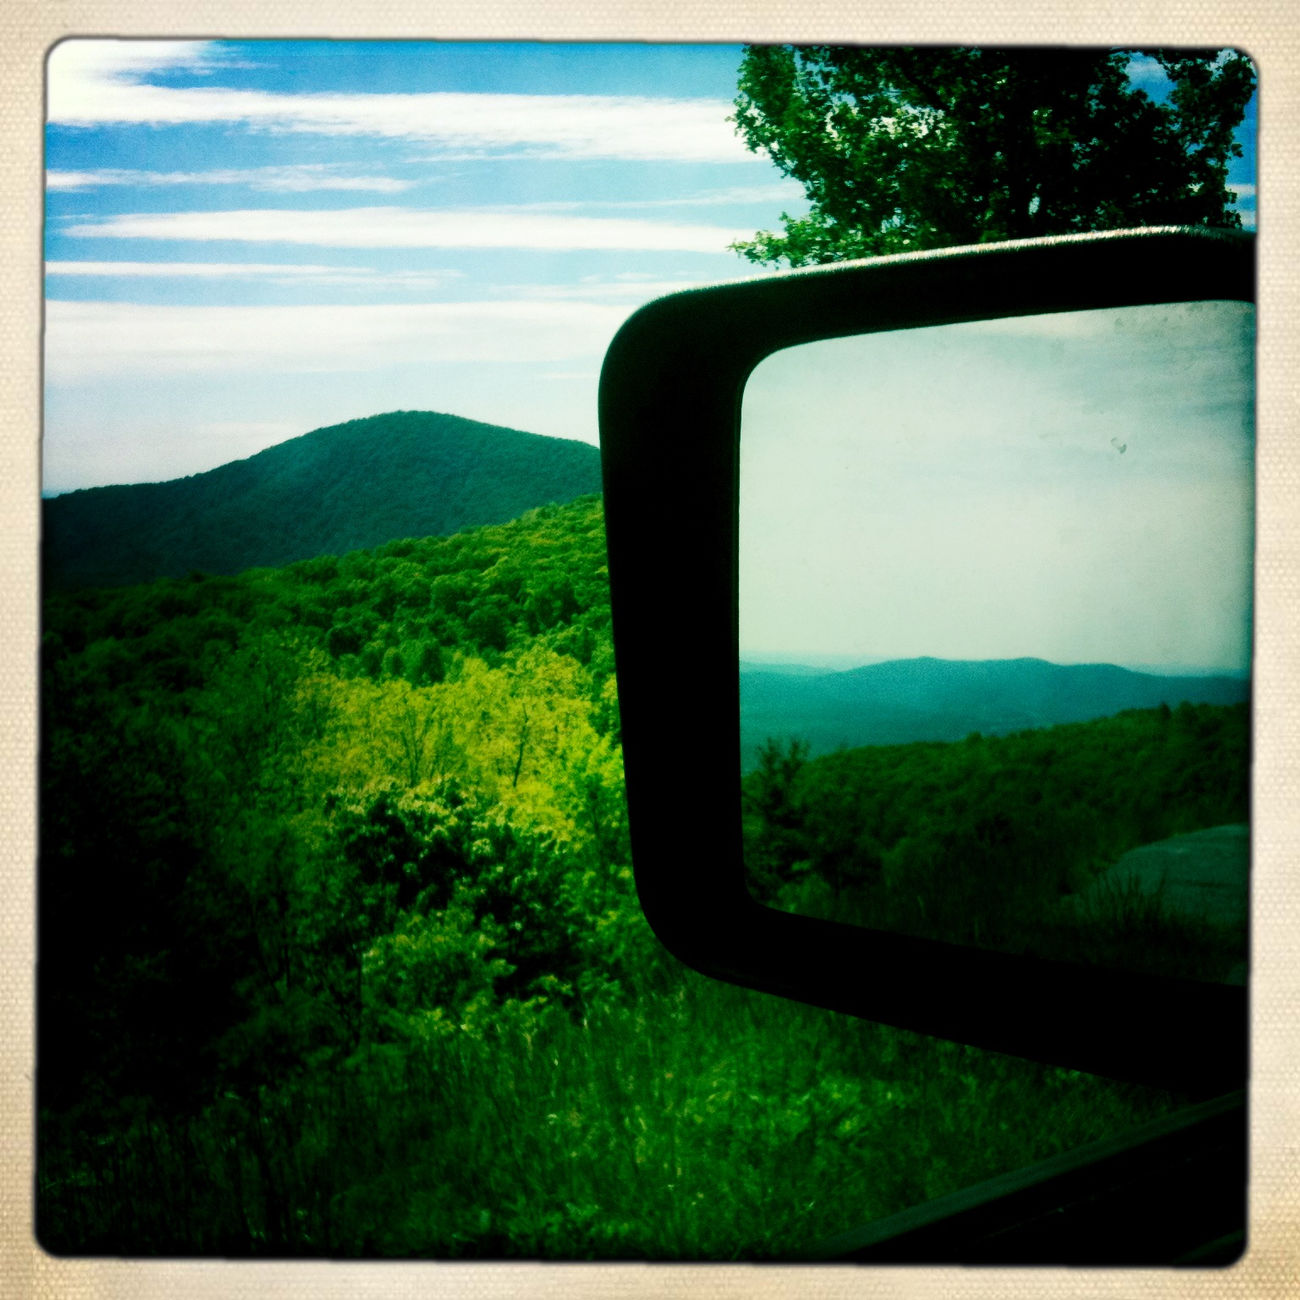 Sometimes when you look back you find what you really wanted all along. #reflection #mirror #mountain #nature #motion